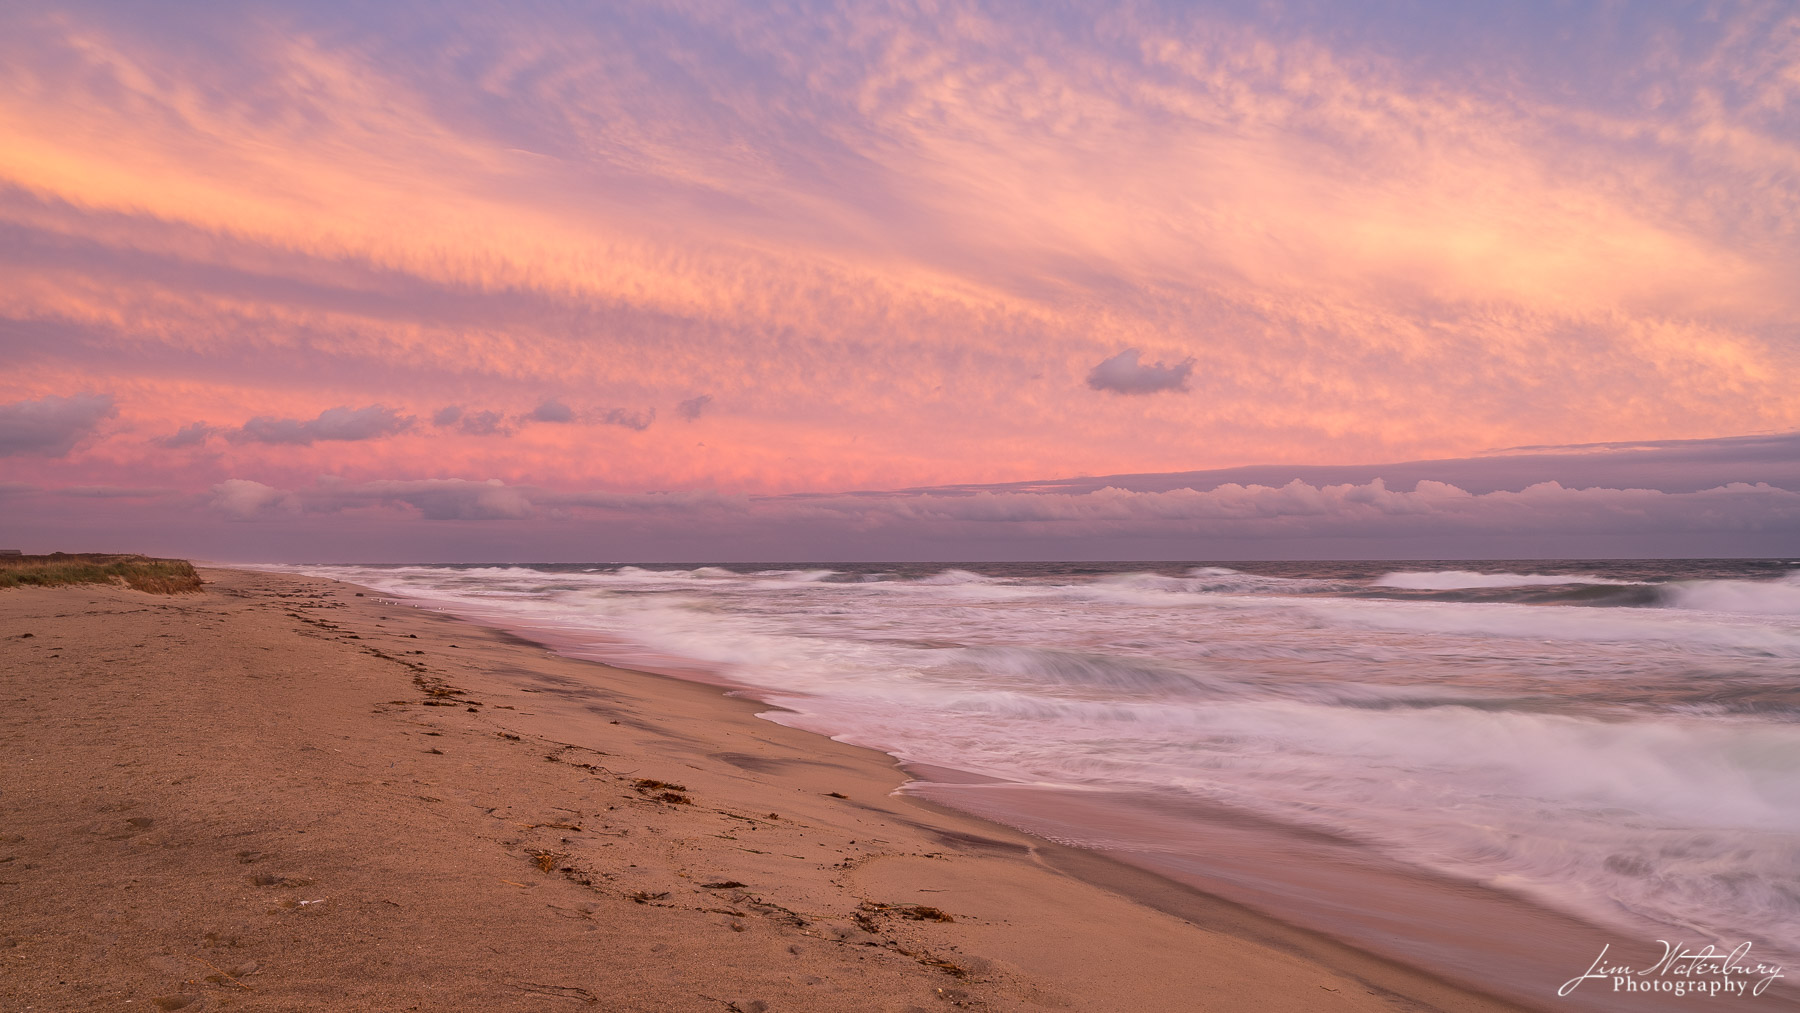 Rolling waves from the Atlantic Ocean approach the shore under wispy pink clouds above.